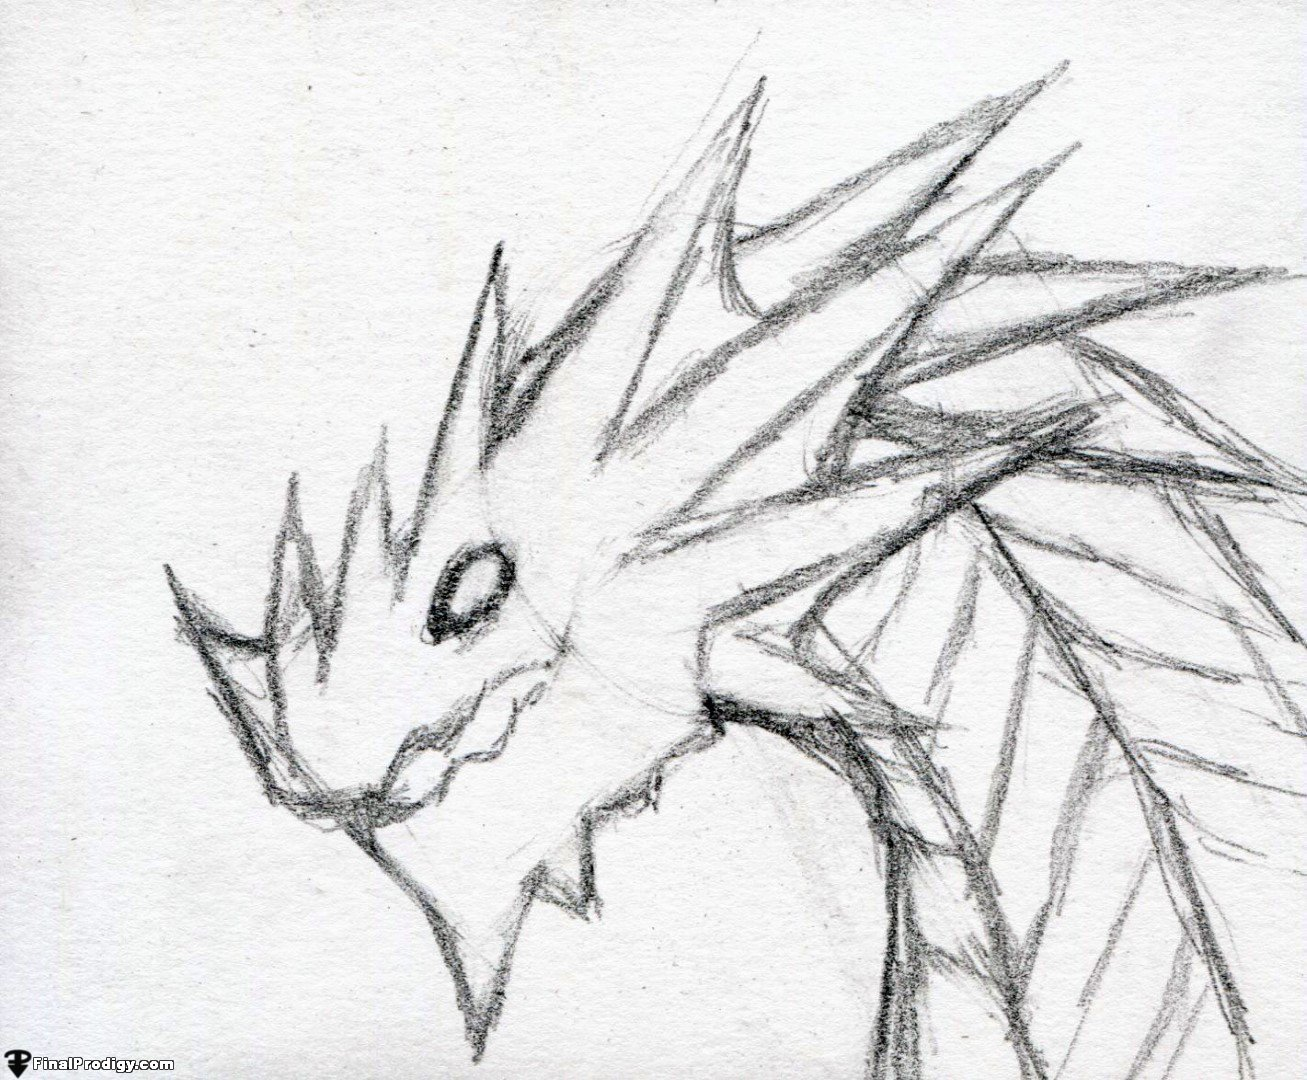 Dragon Head Drawings 19201080 Resolution Wallpaper HQ Backgrounds 1307x1080